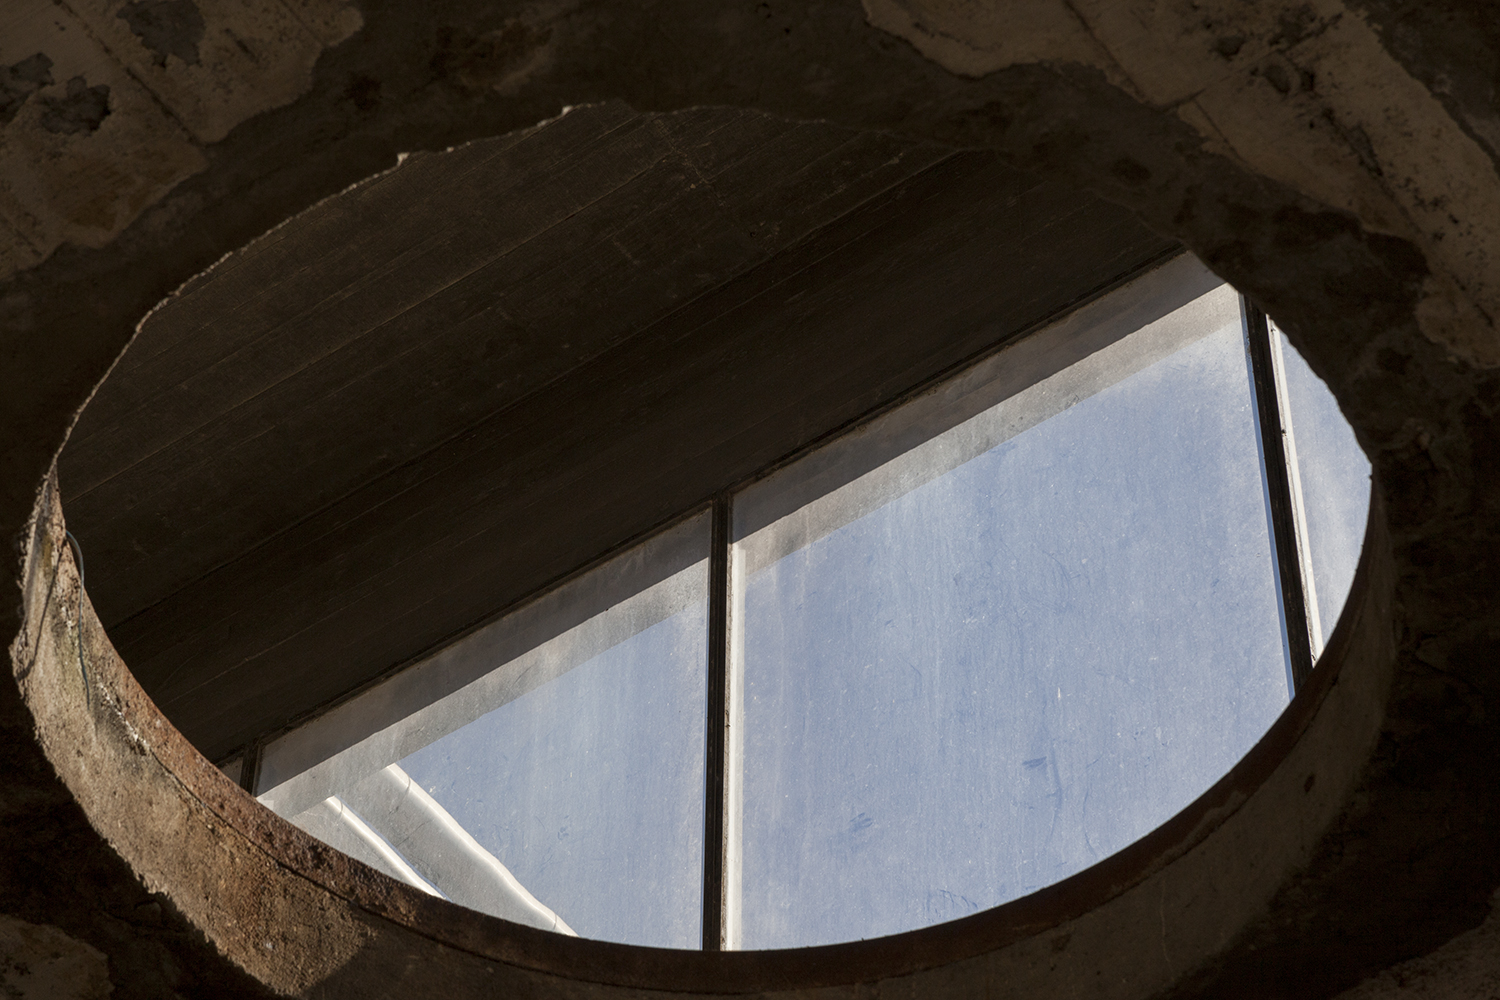 carina martins, vertical ascent - circular window in the roof in an abandoned factory